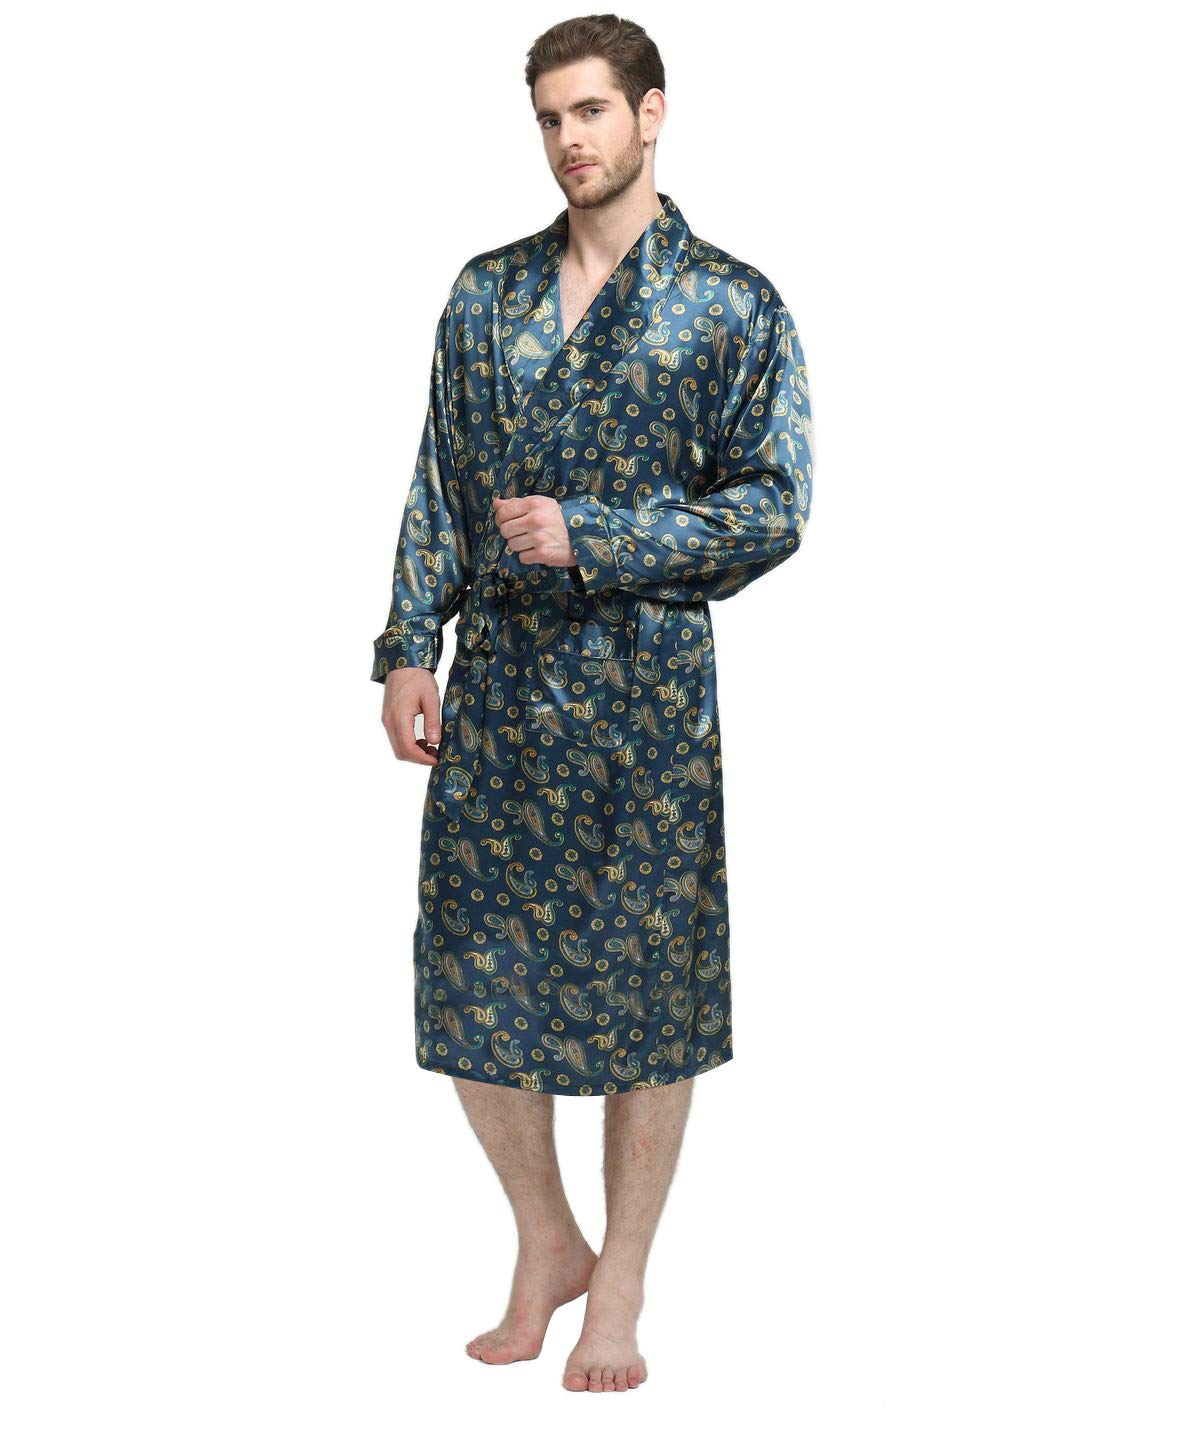 Mens Silk Satin Bathrobe Robe Nightgown_Big and Tall S~3XL